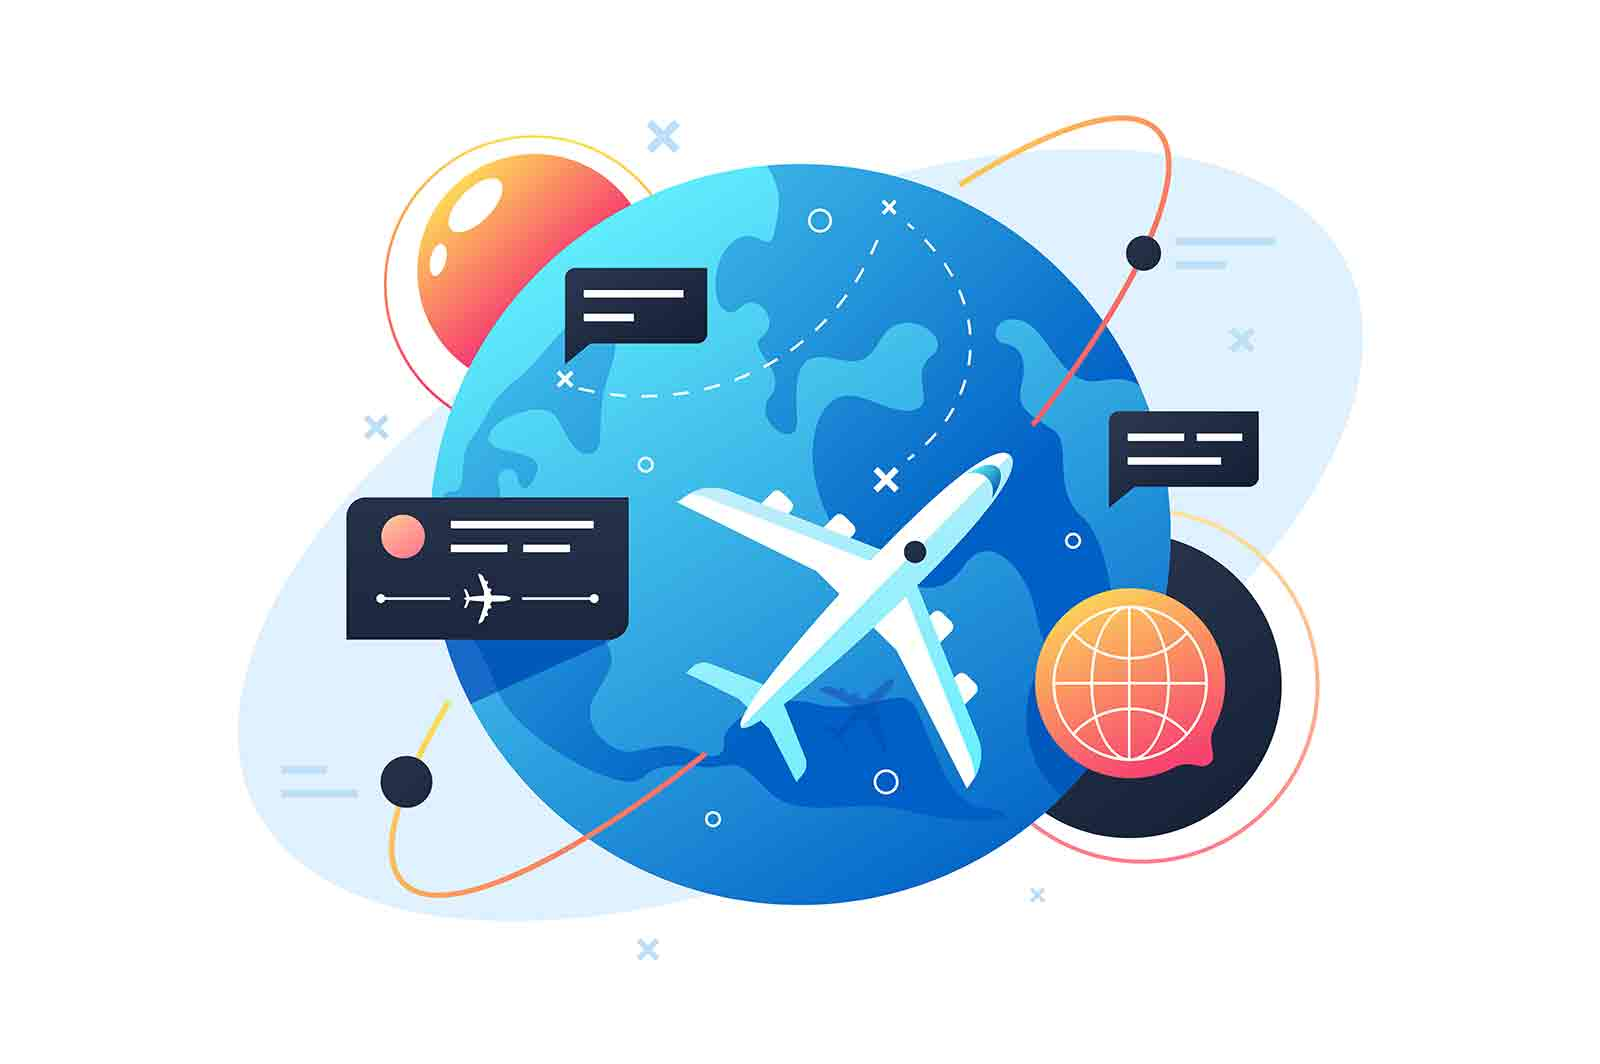 Plane flies around planet using points and messages box. Isolated concept fly vehicle with earth tourism, trip and journey. Vector illustration.